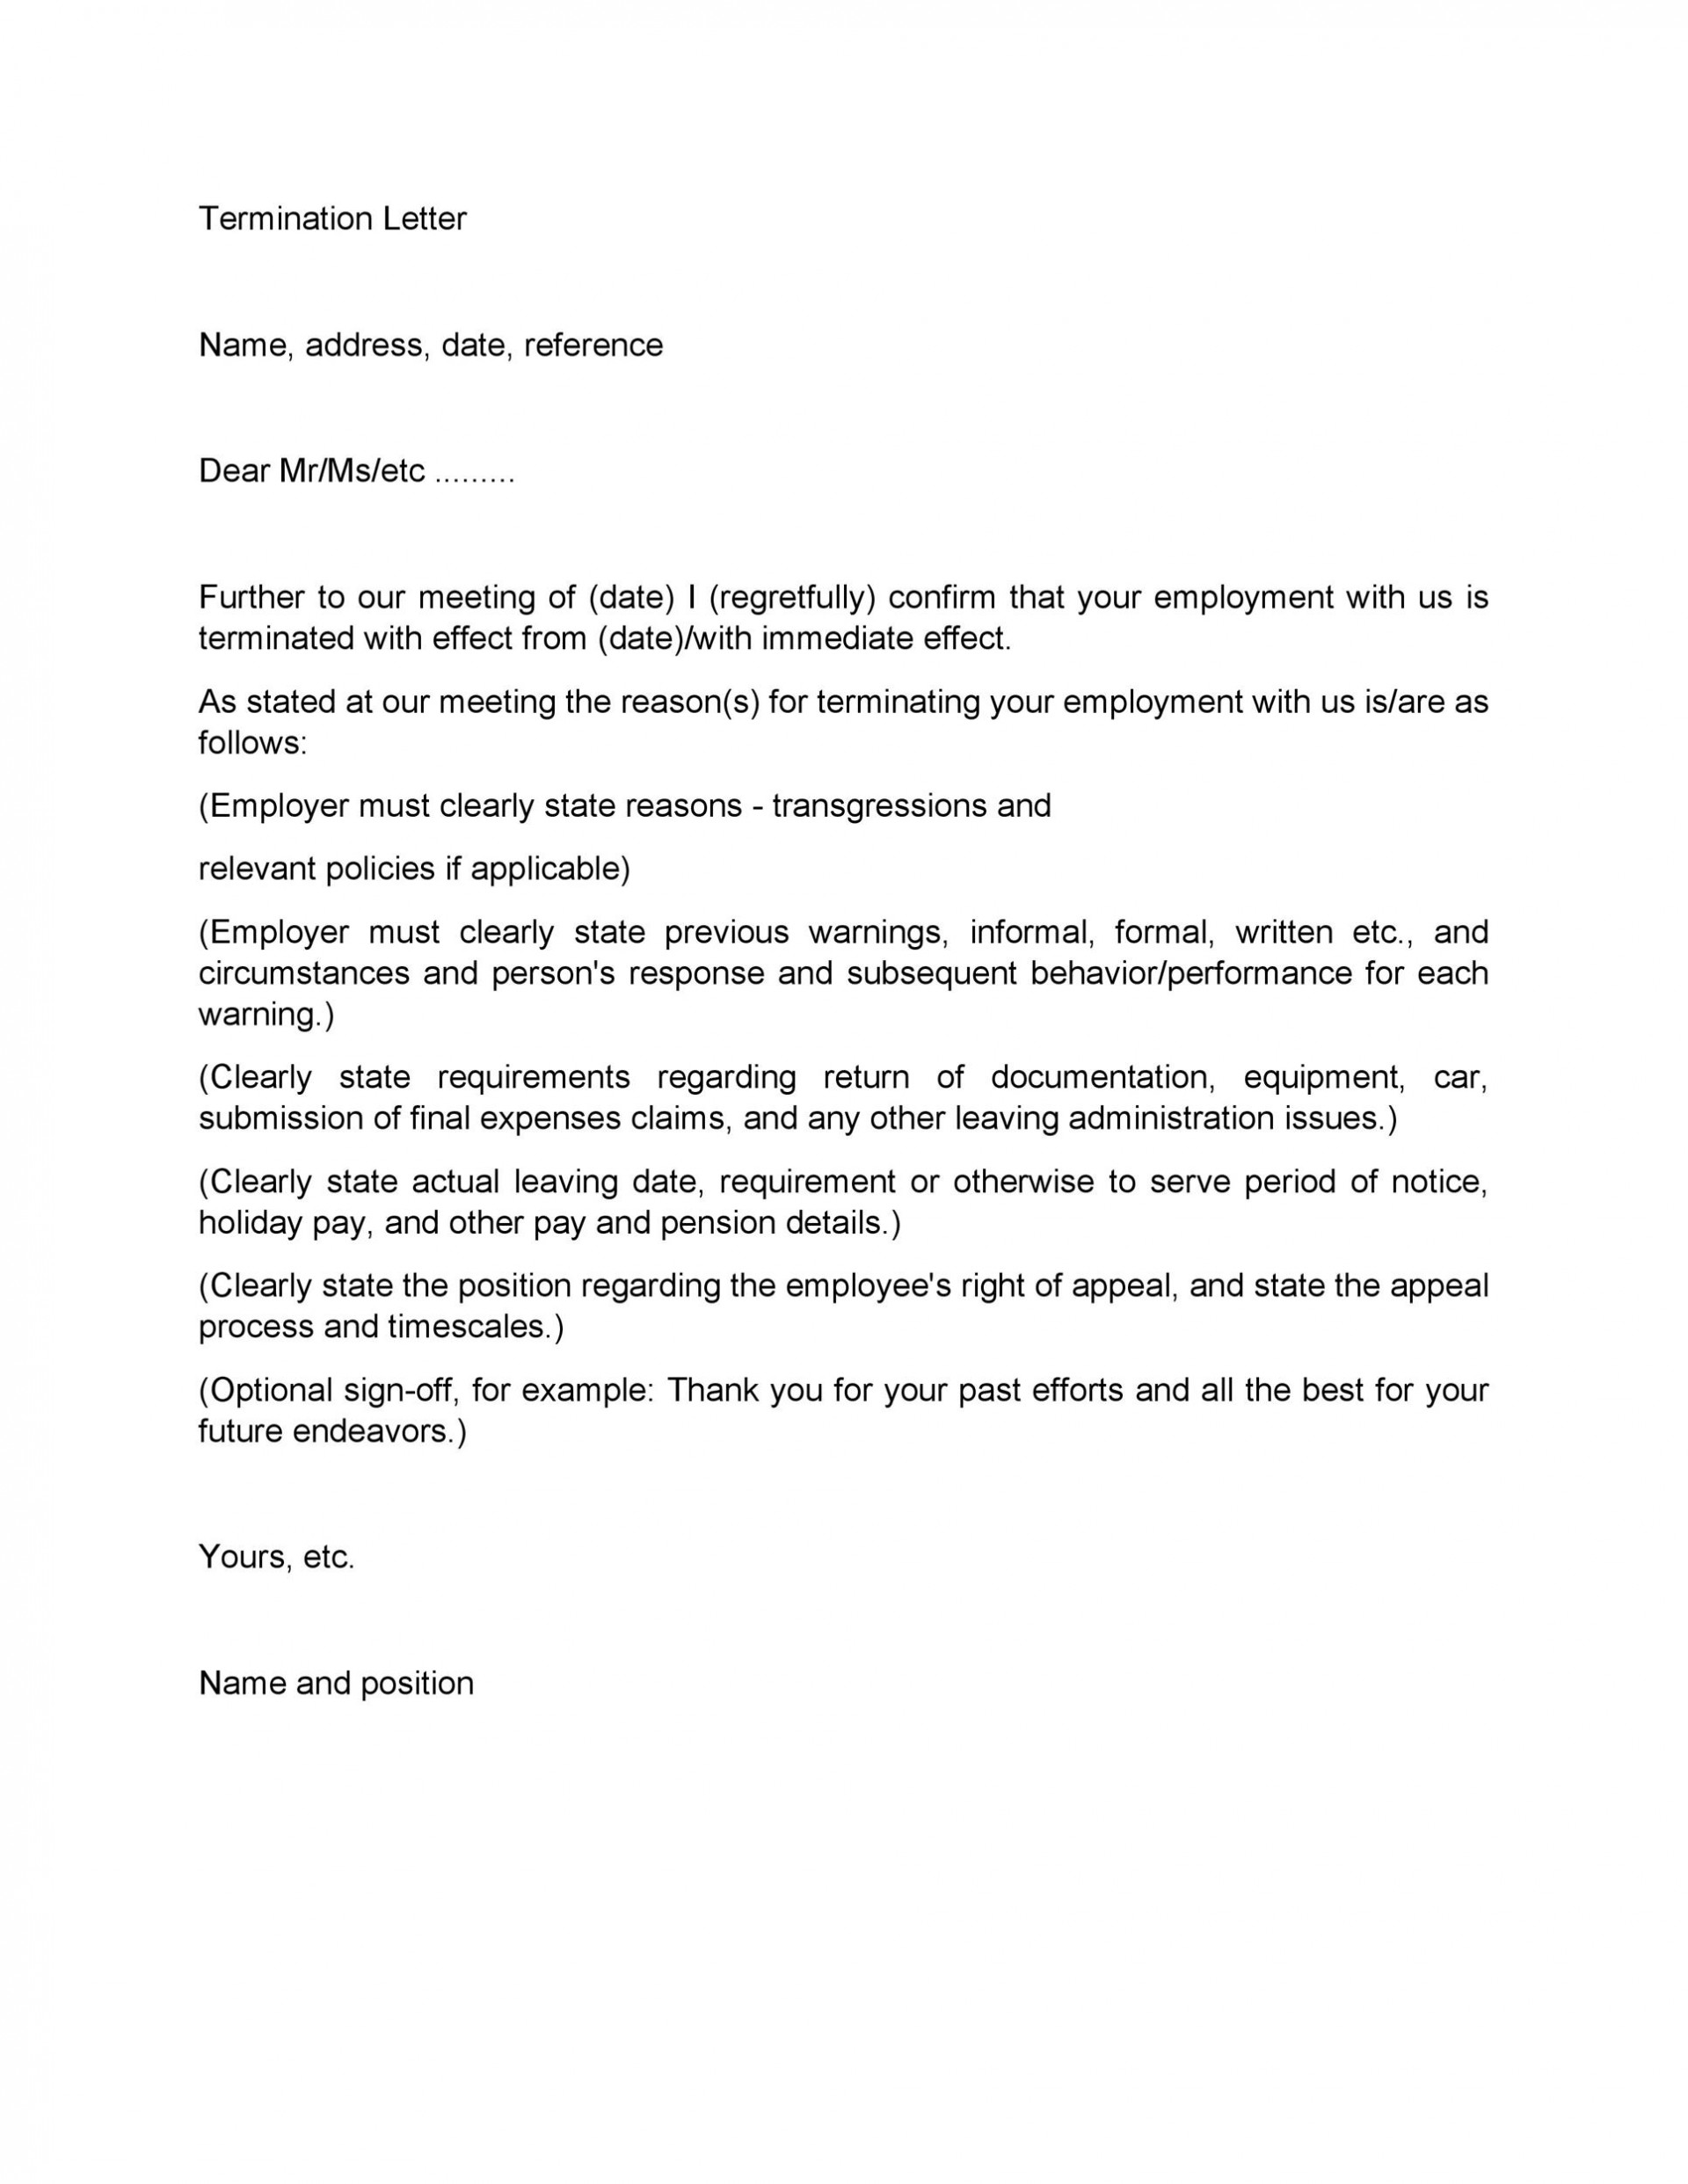 Employment Termination Letter Example from www.addictionary.org